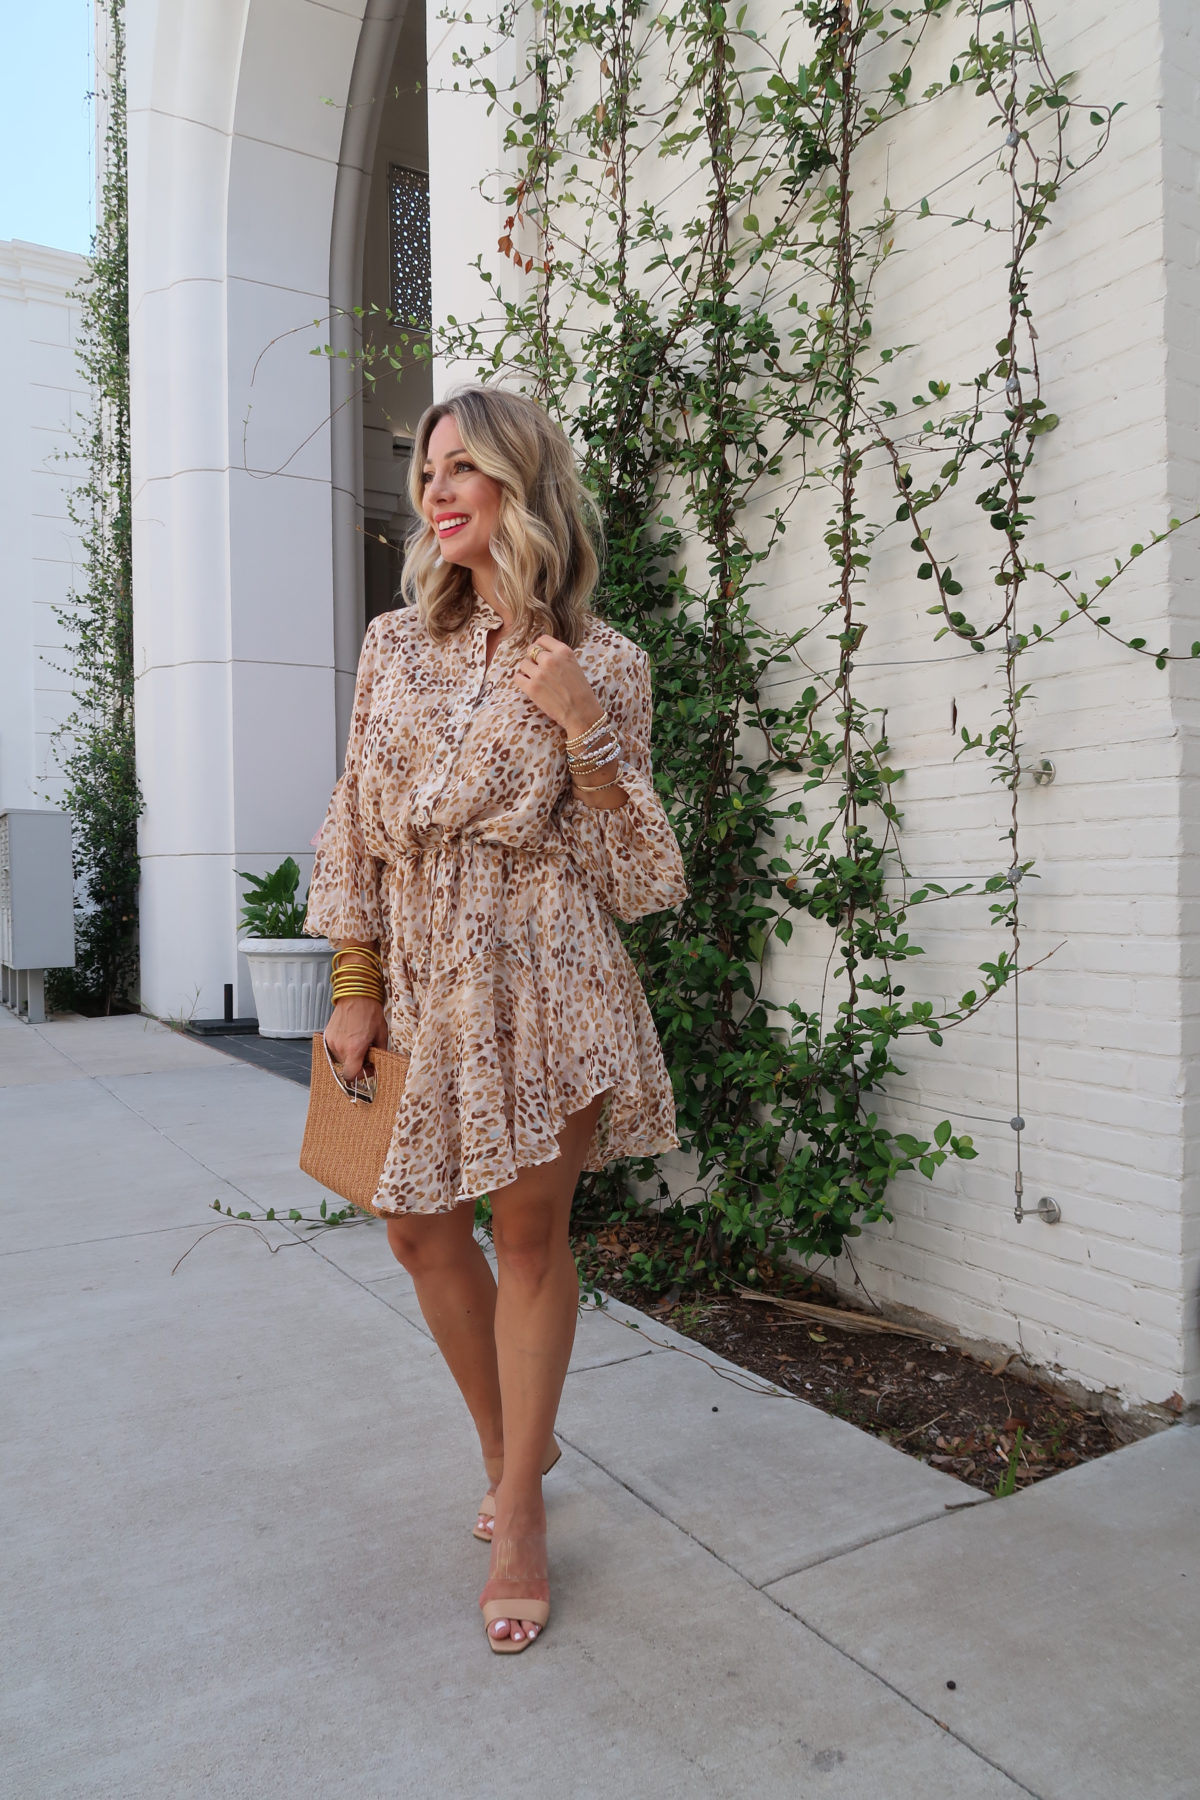 Flirty Summer Styles & Date Night Dresses,Leopard Dress, Sandals